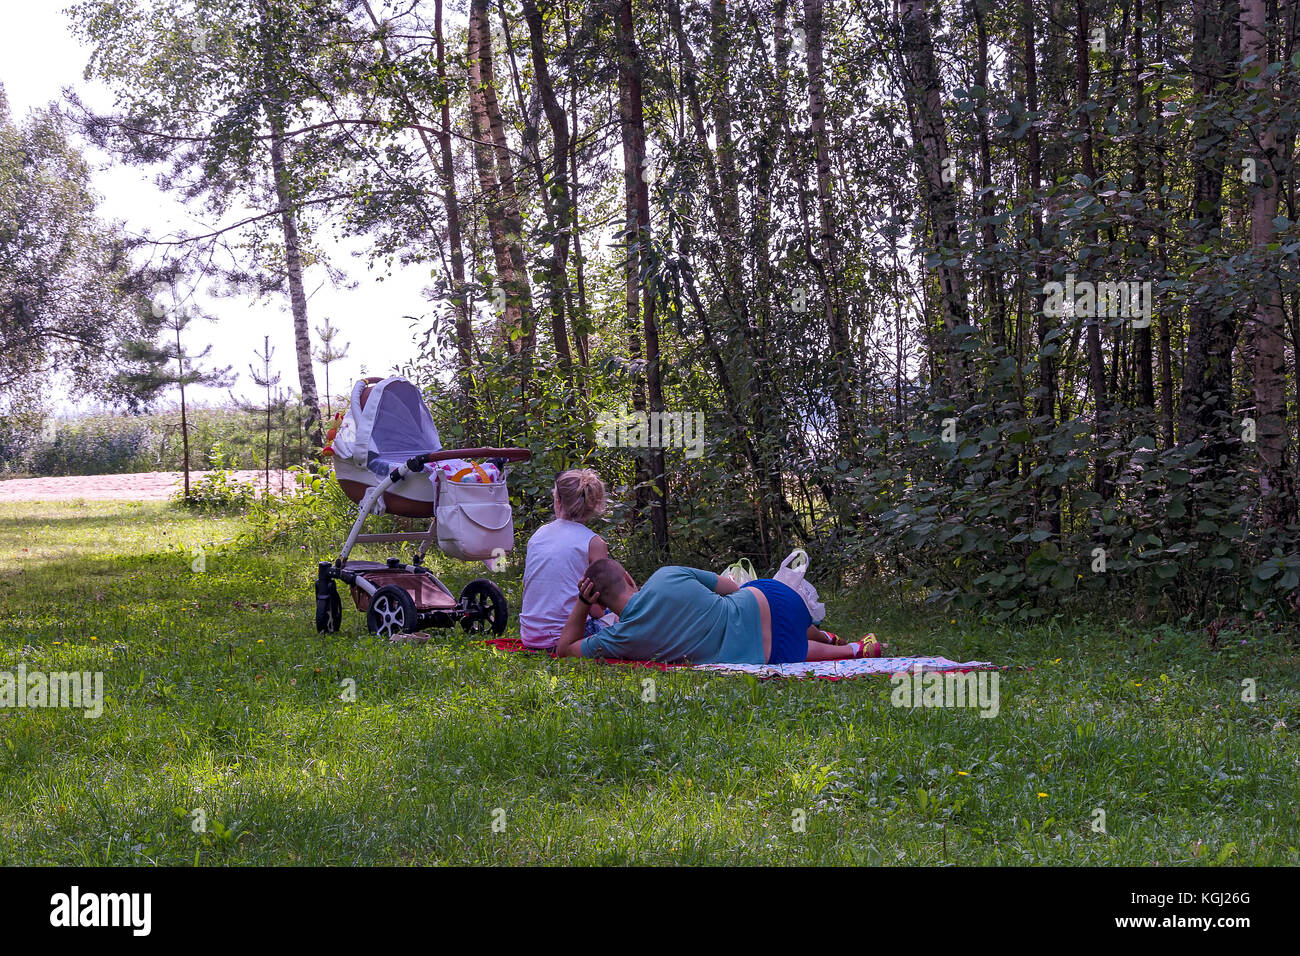 Family with a stroller resting in the shade of trees in the fresh air - Stock Image